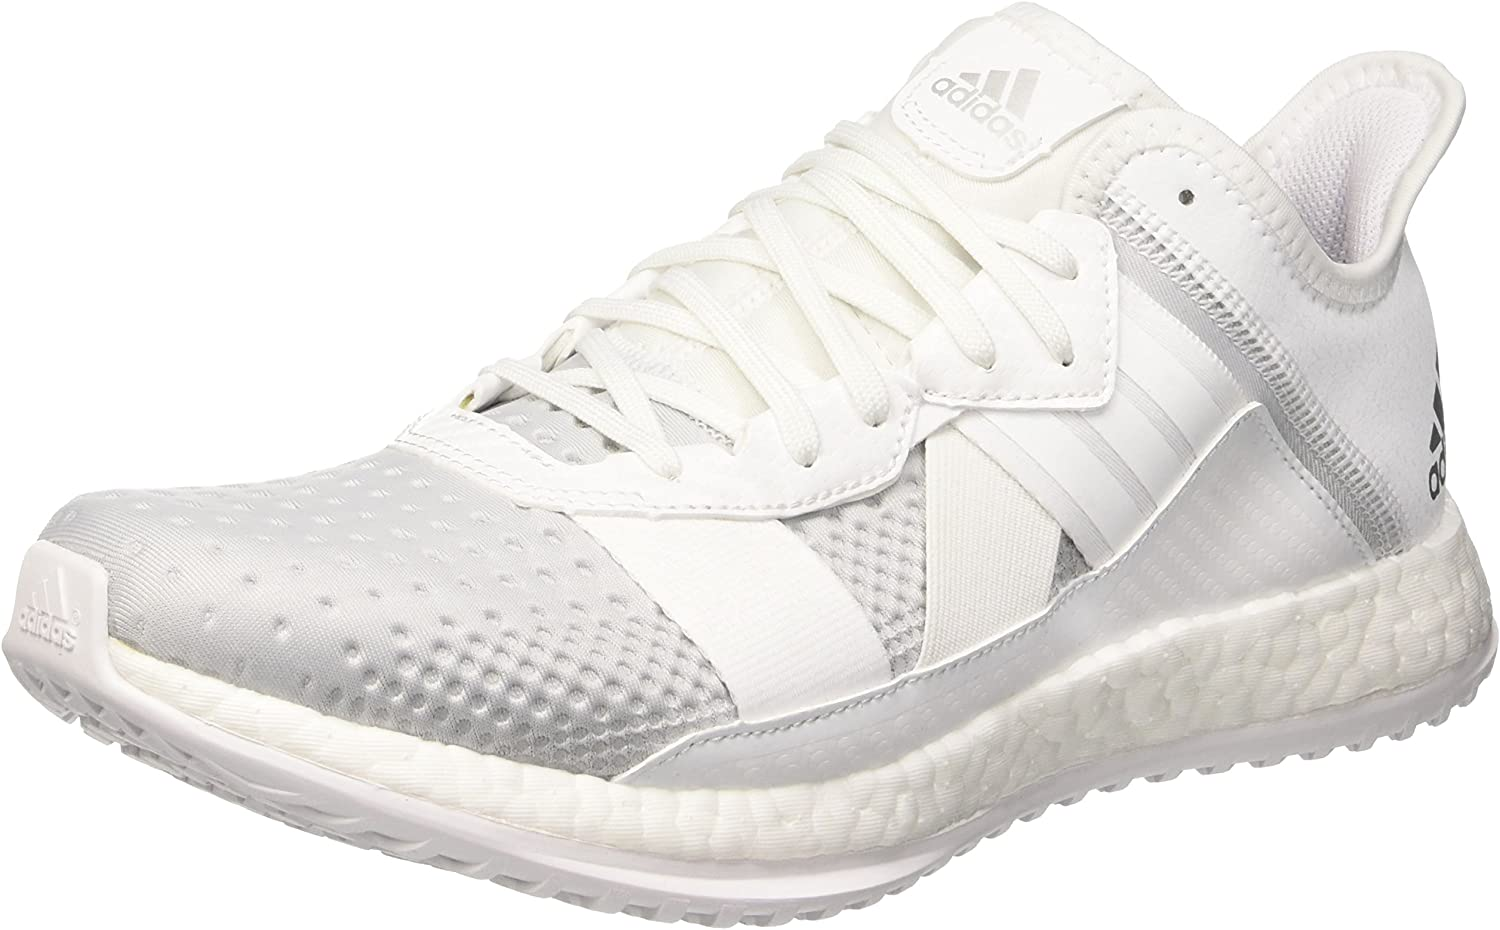 Adidas Details About Men shoes Training Pure Boost ZG Trainer Gym Work Out Running New S76725